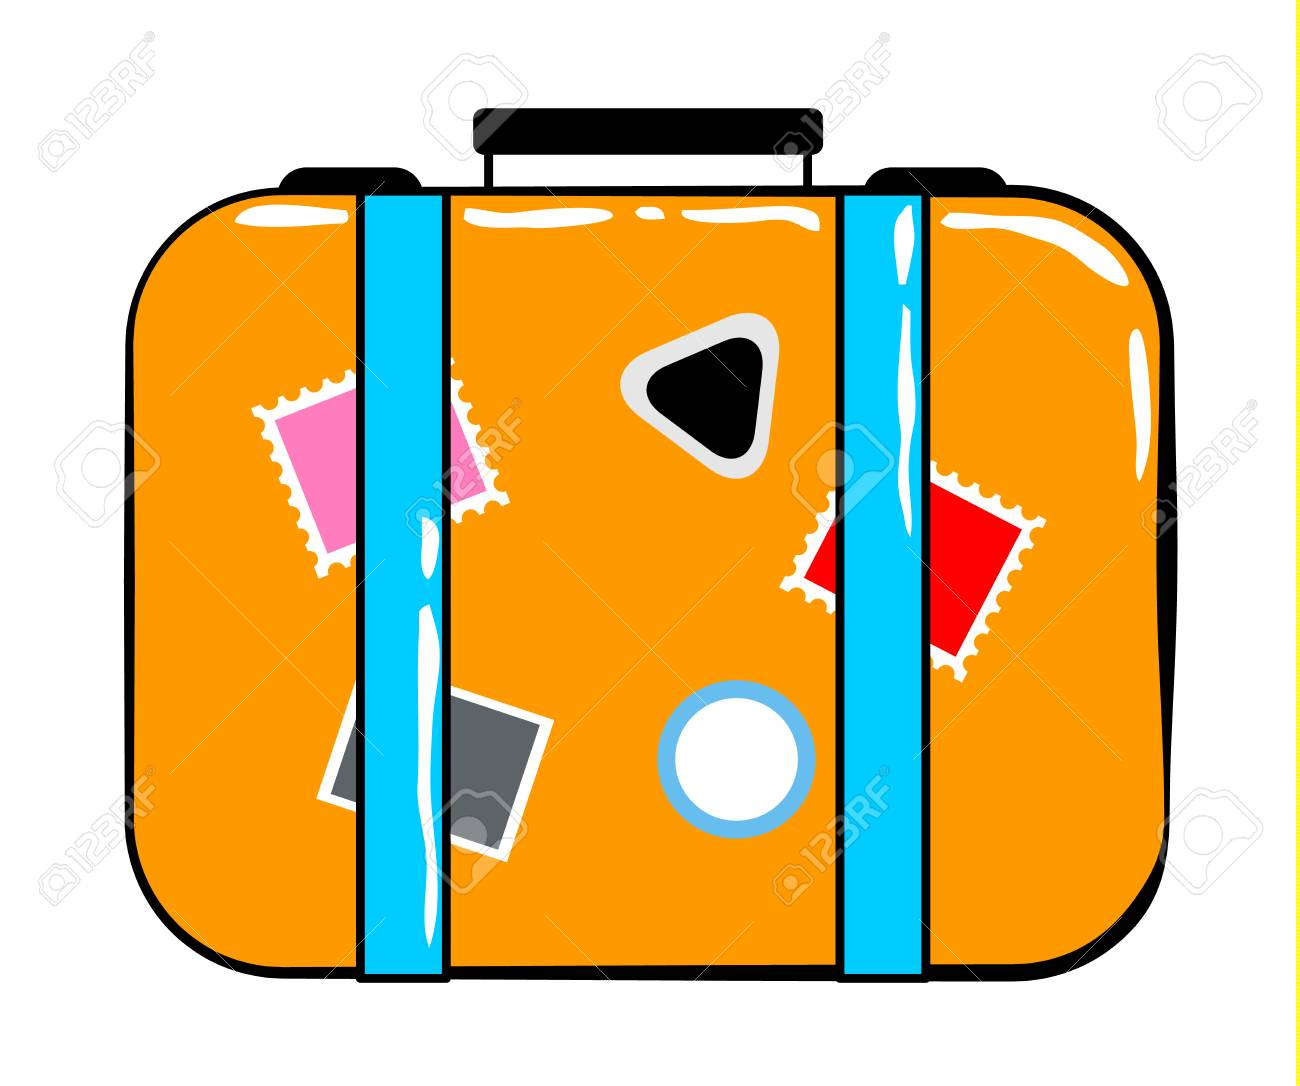 Valise Cartoon Sticker In Retro Style On White Background Vector Royalty Free Cliparts Vectors And Stock Illustration Image 71047897